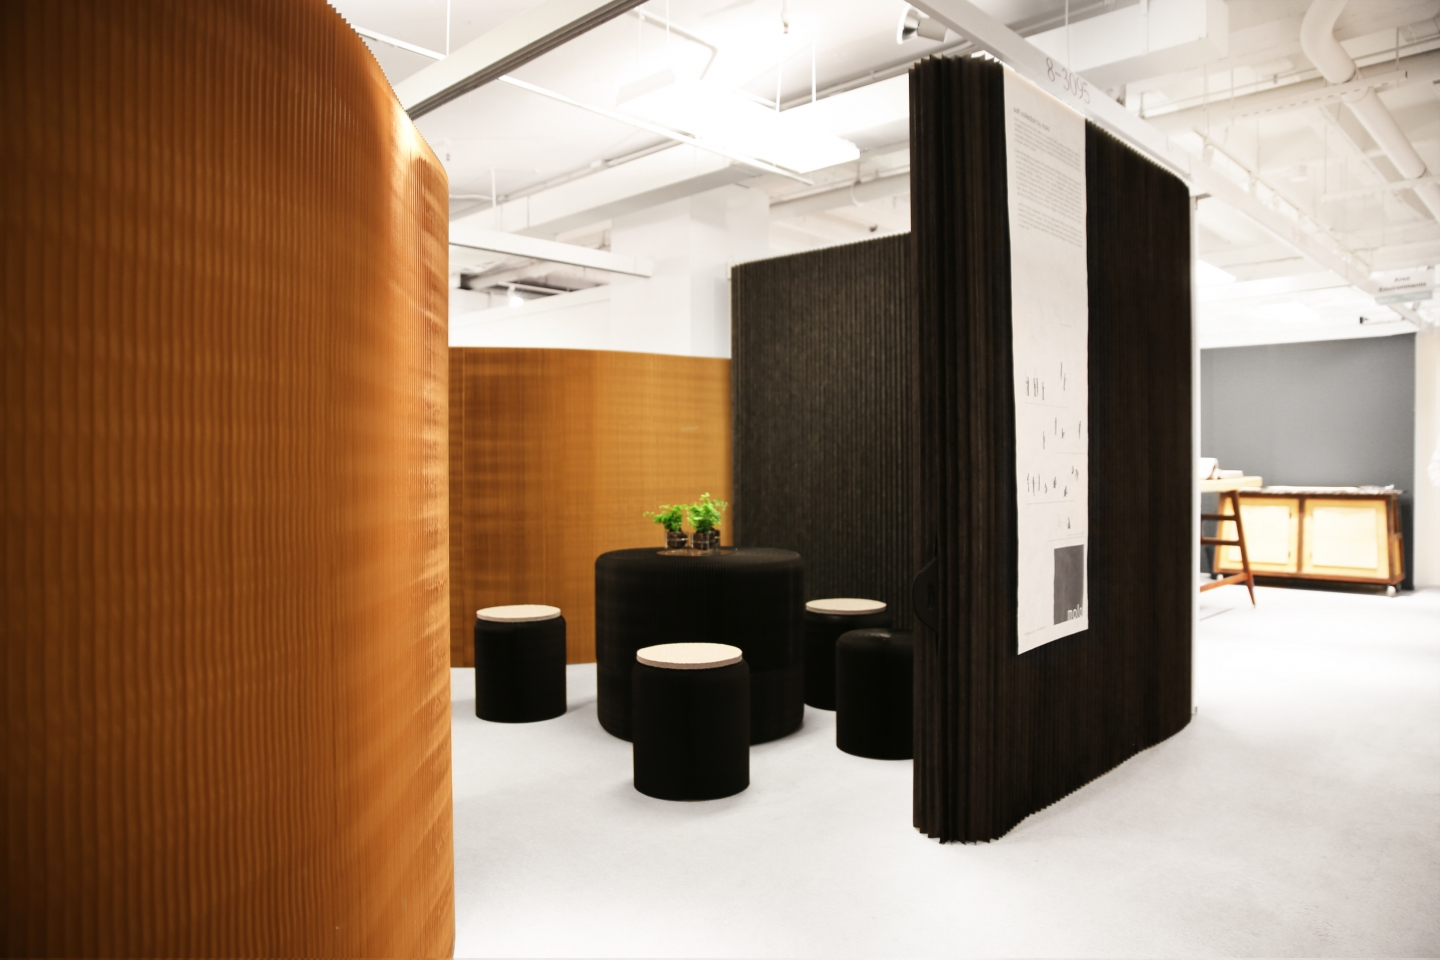 molo's installation at Neocon 2014 featured the premiere of benchwall and thinwall modular system - portable wall partition and paper chairs in black